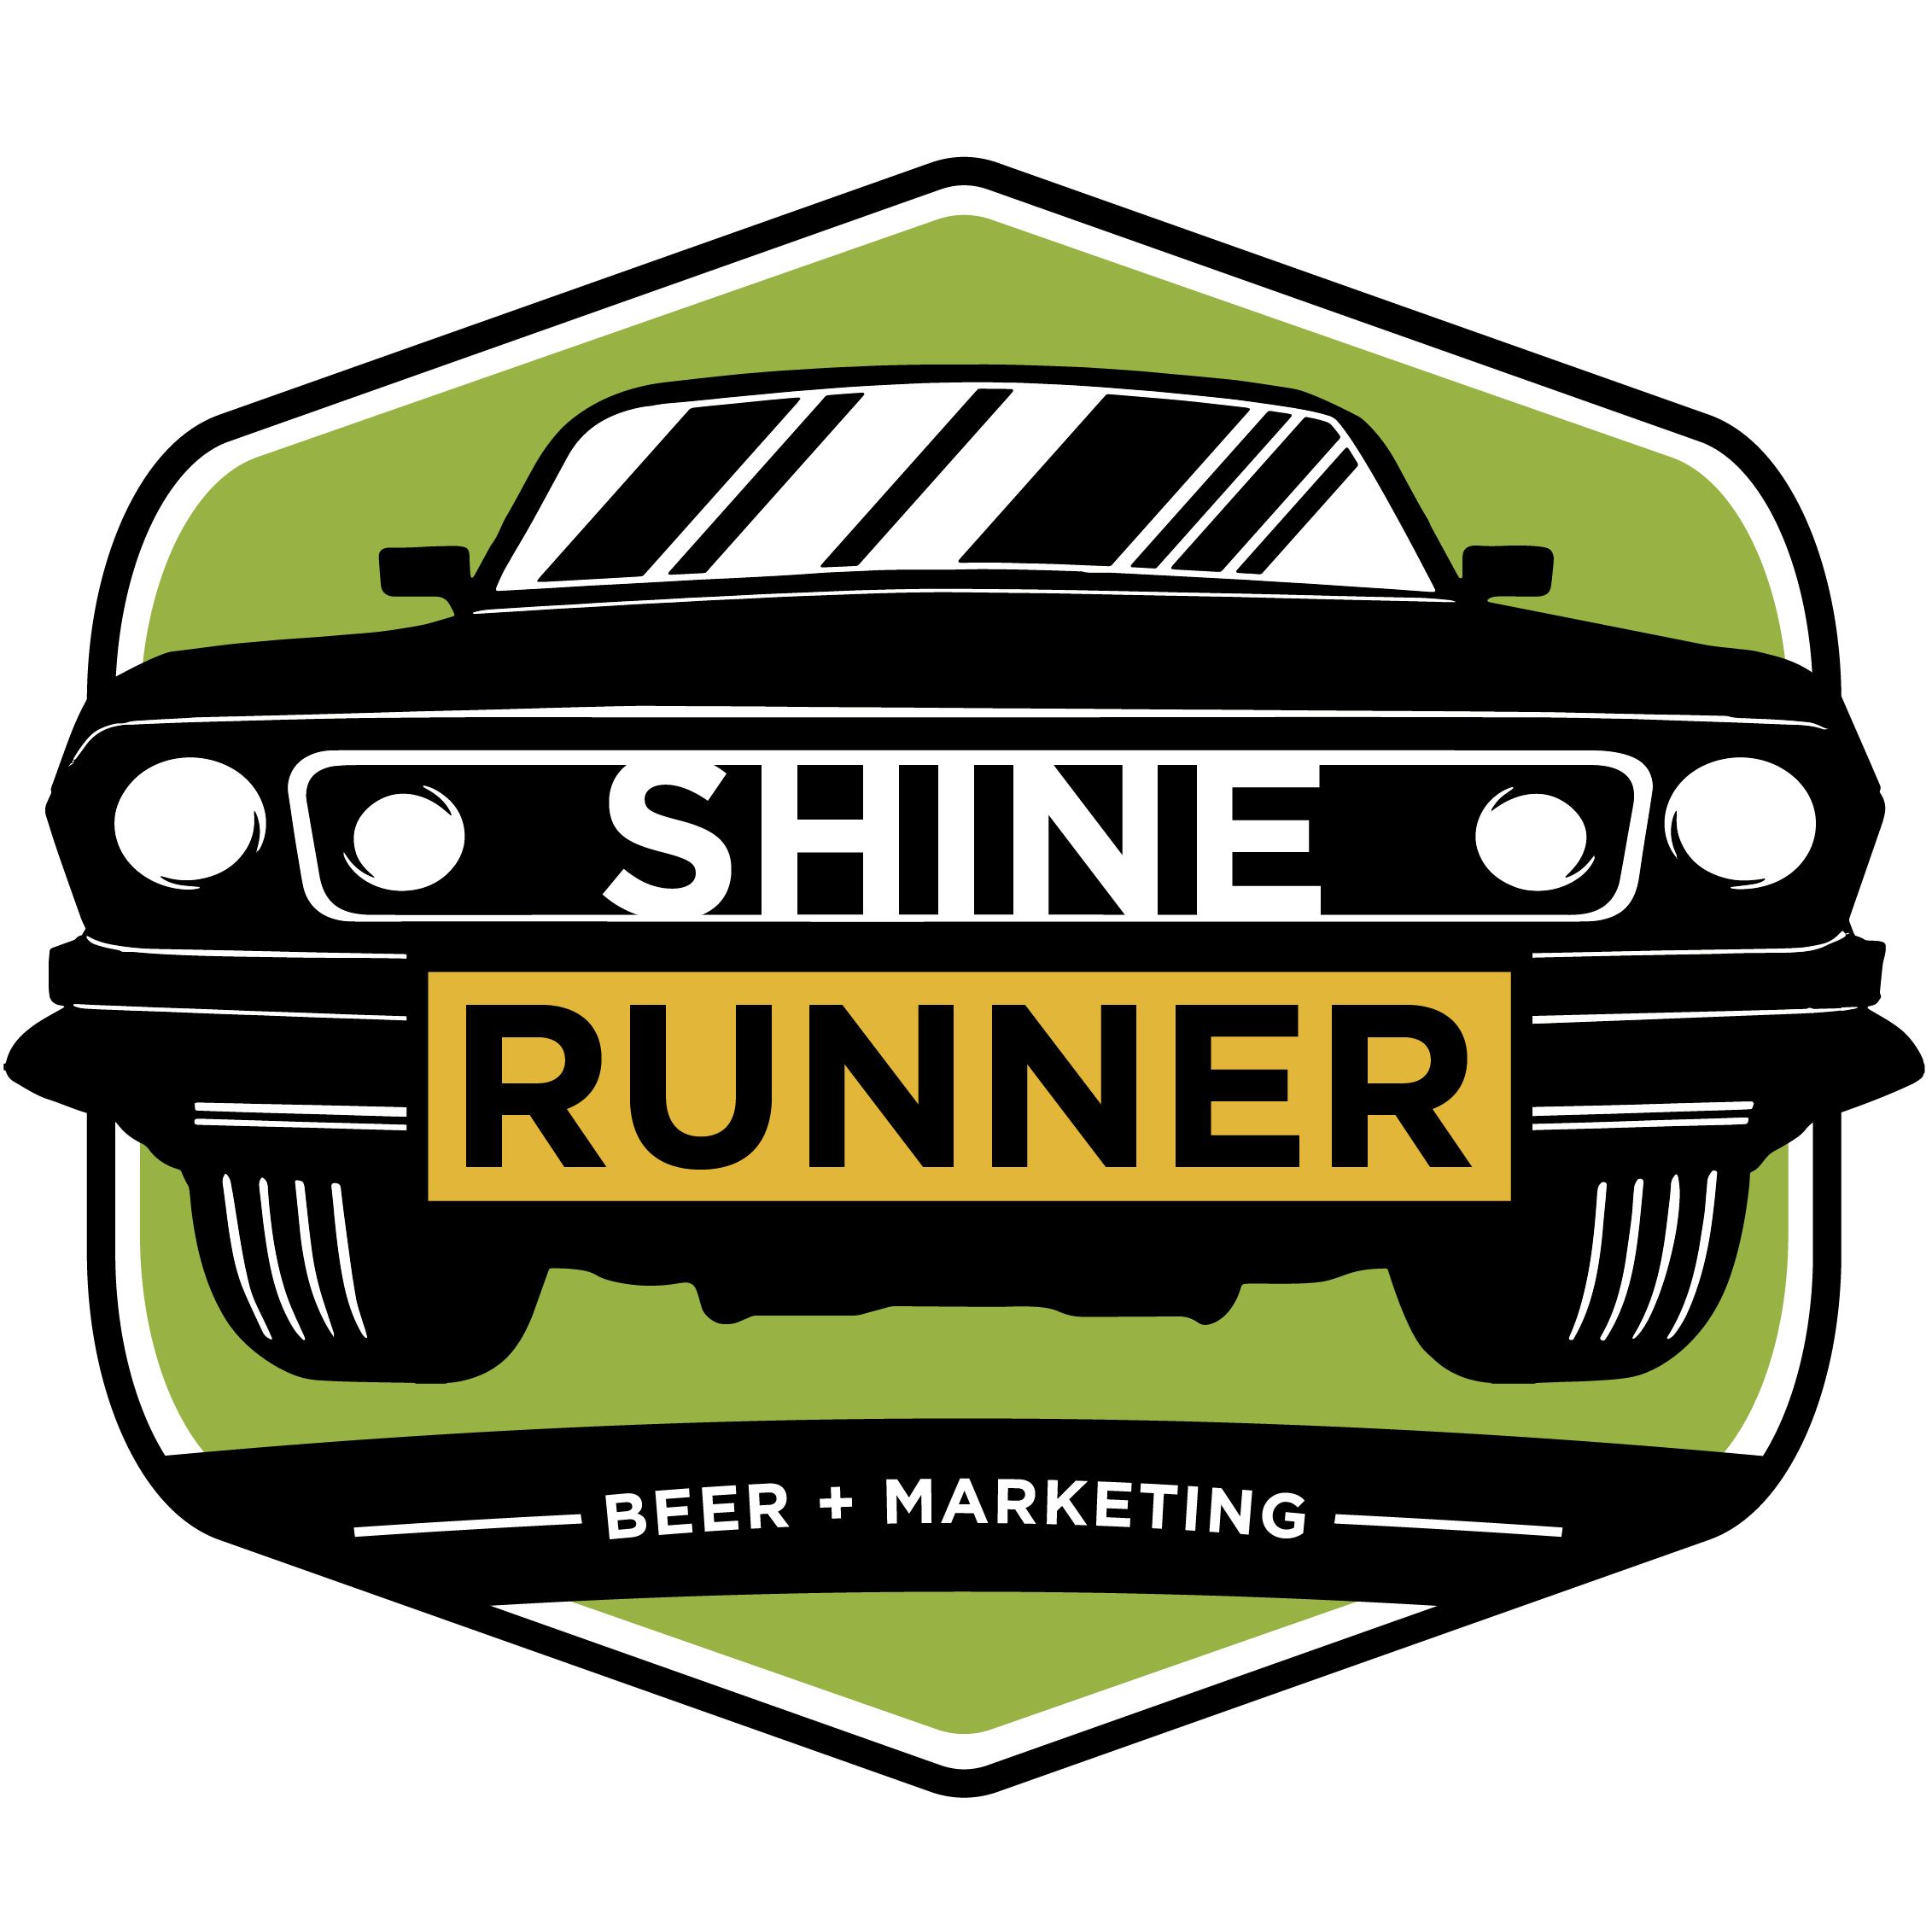 Shinerunner Craft Marketing